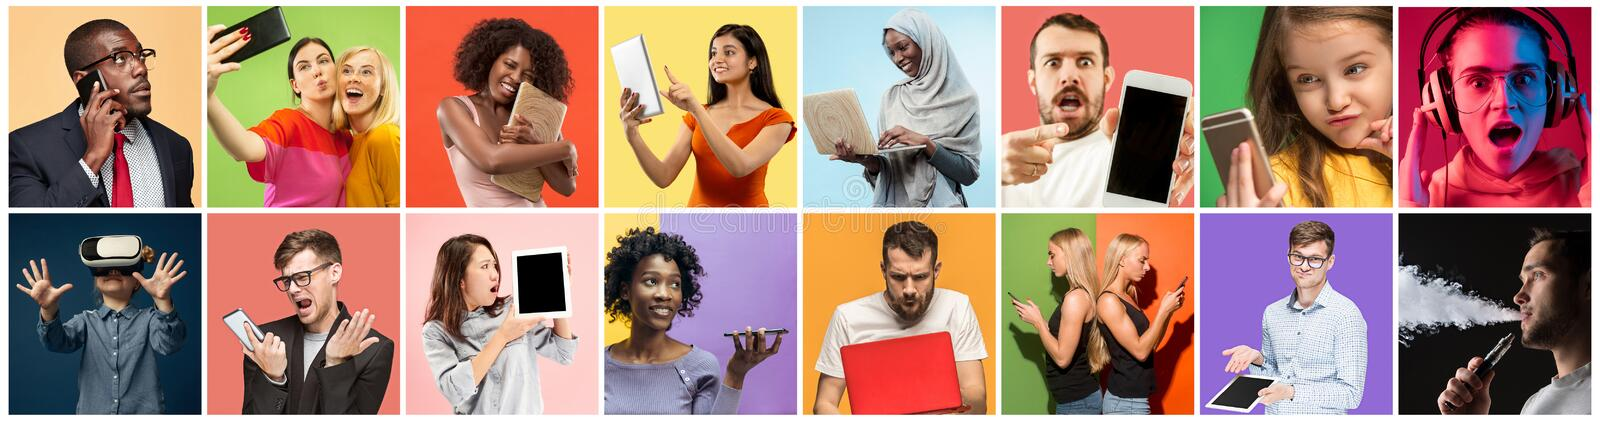 Portrait of people using different gadgets on multicolor background royalty free stock photos